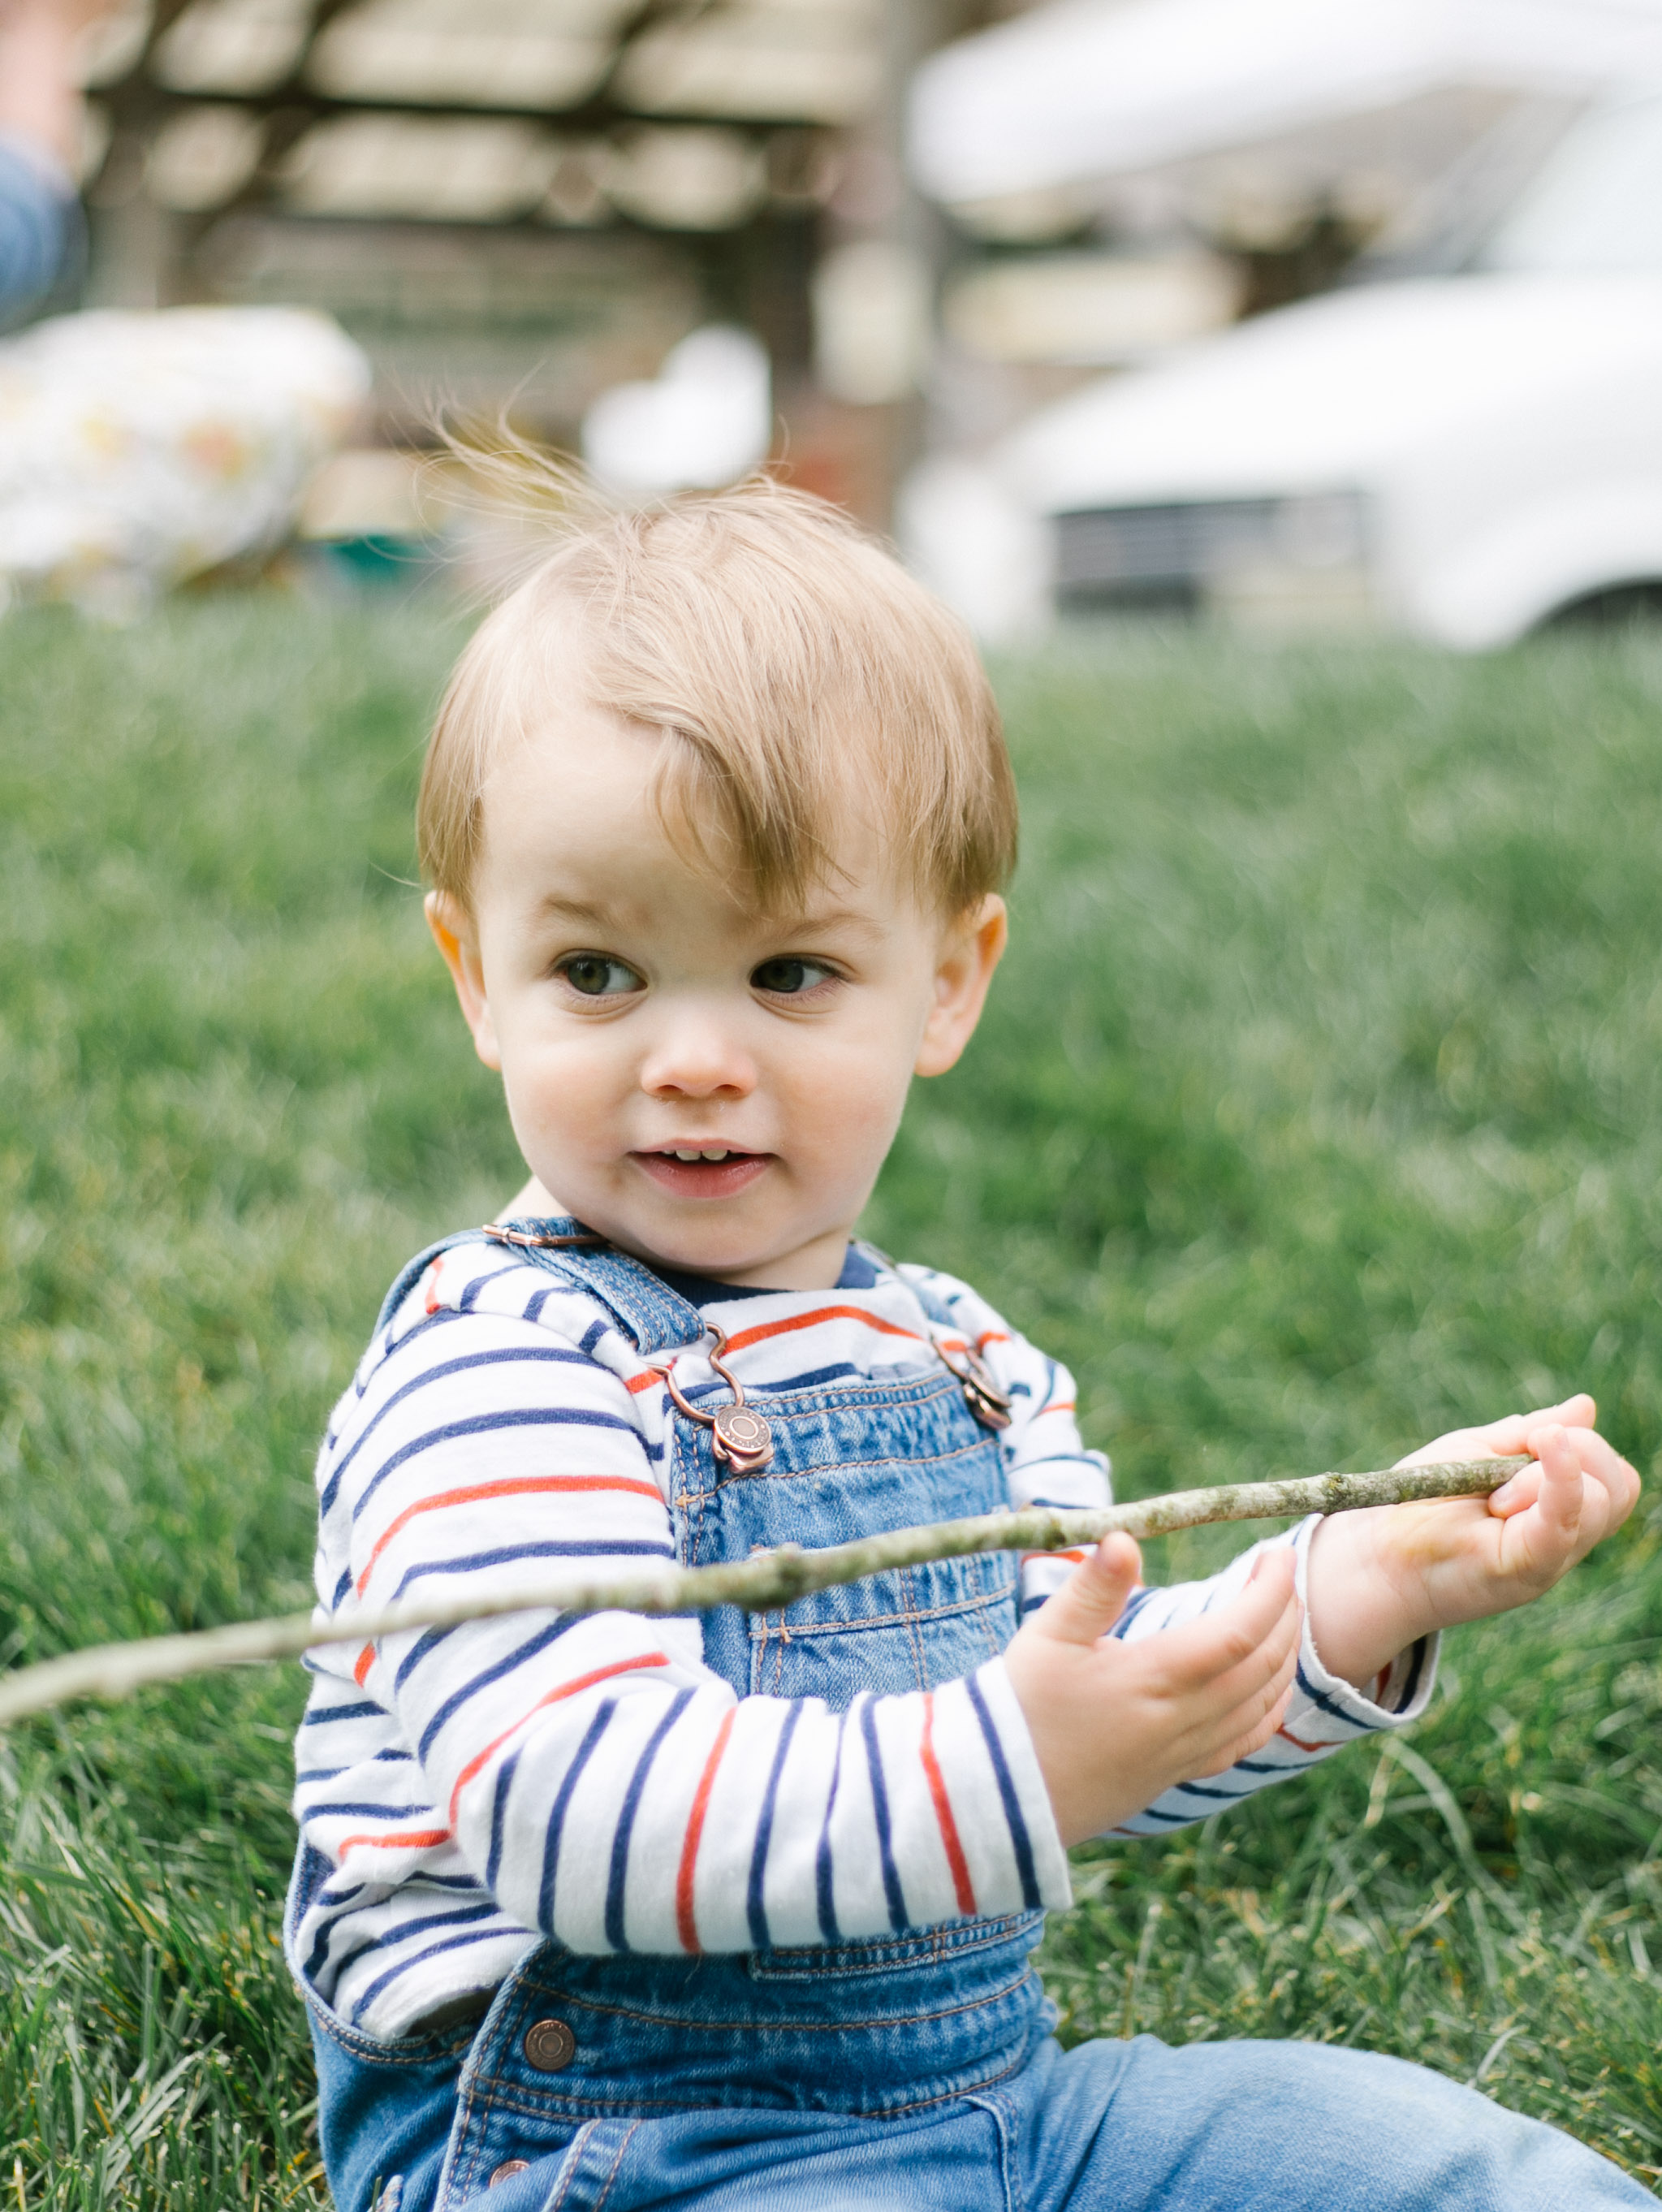 Fine art portraits of my child at the Redmond Farmer Market | Chelsea Macor Photography Seattle and Bellevue Family Photography-4.jpg